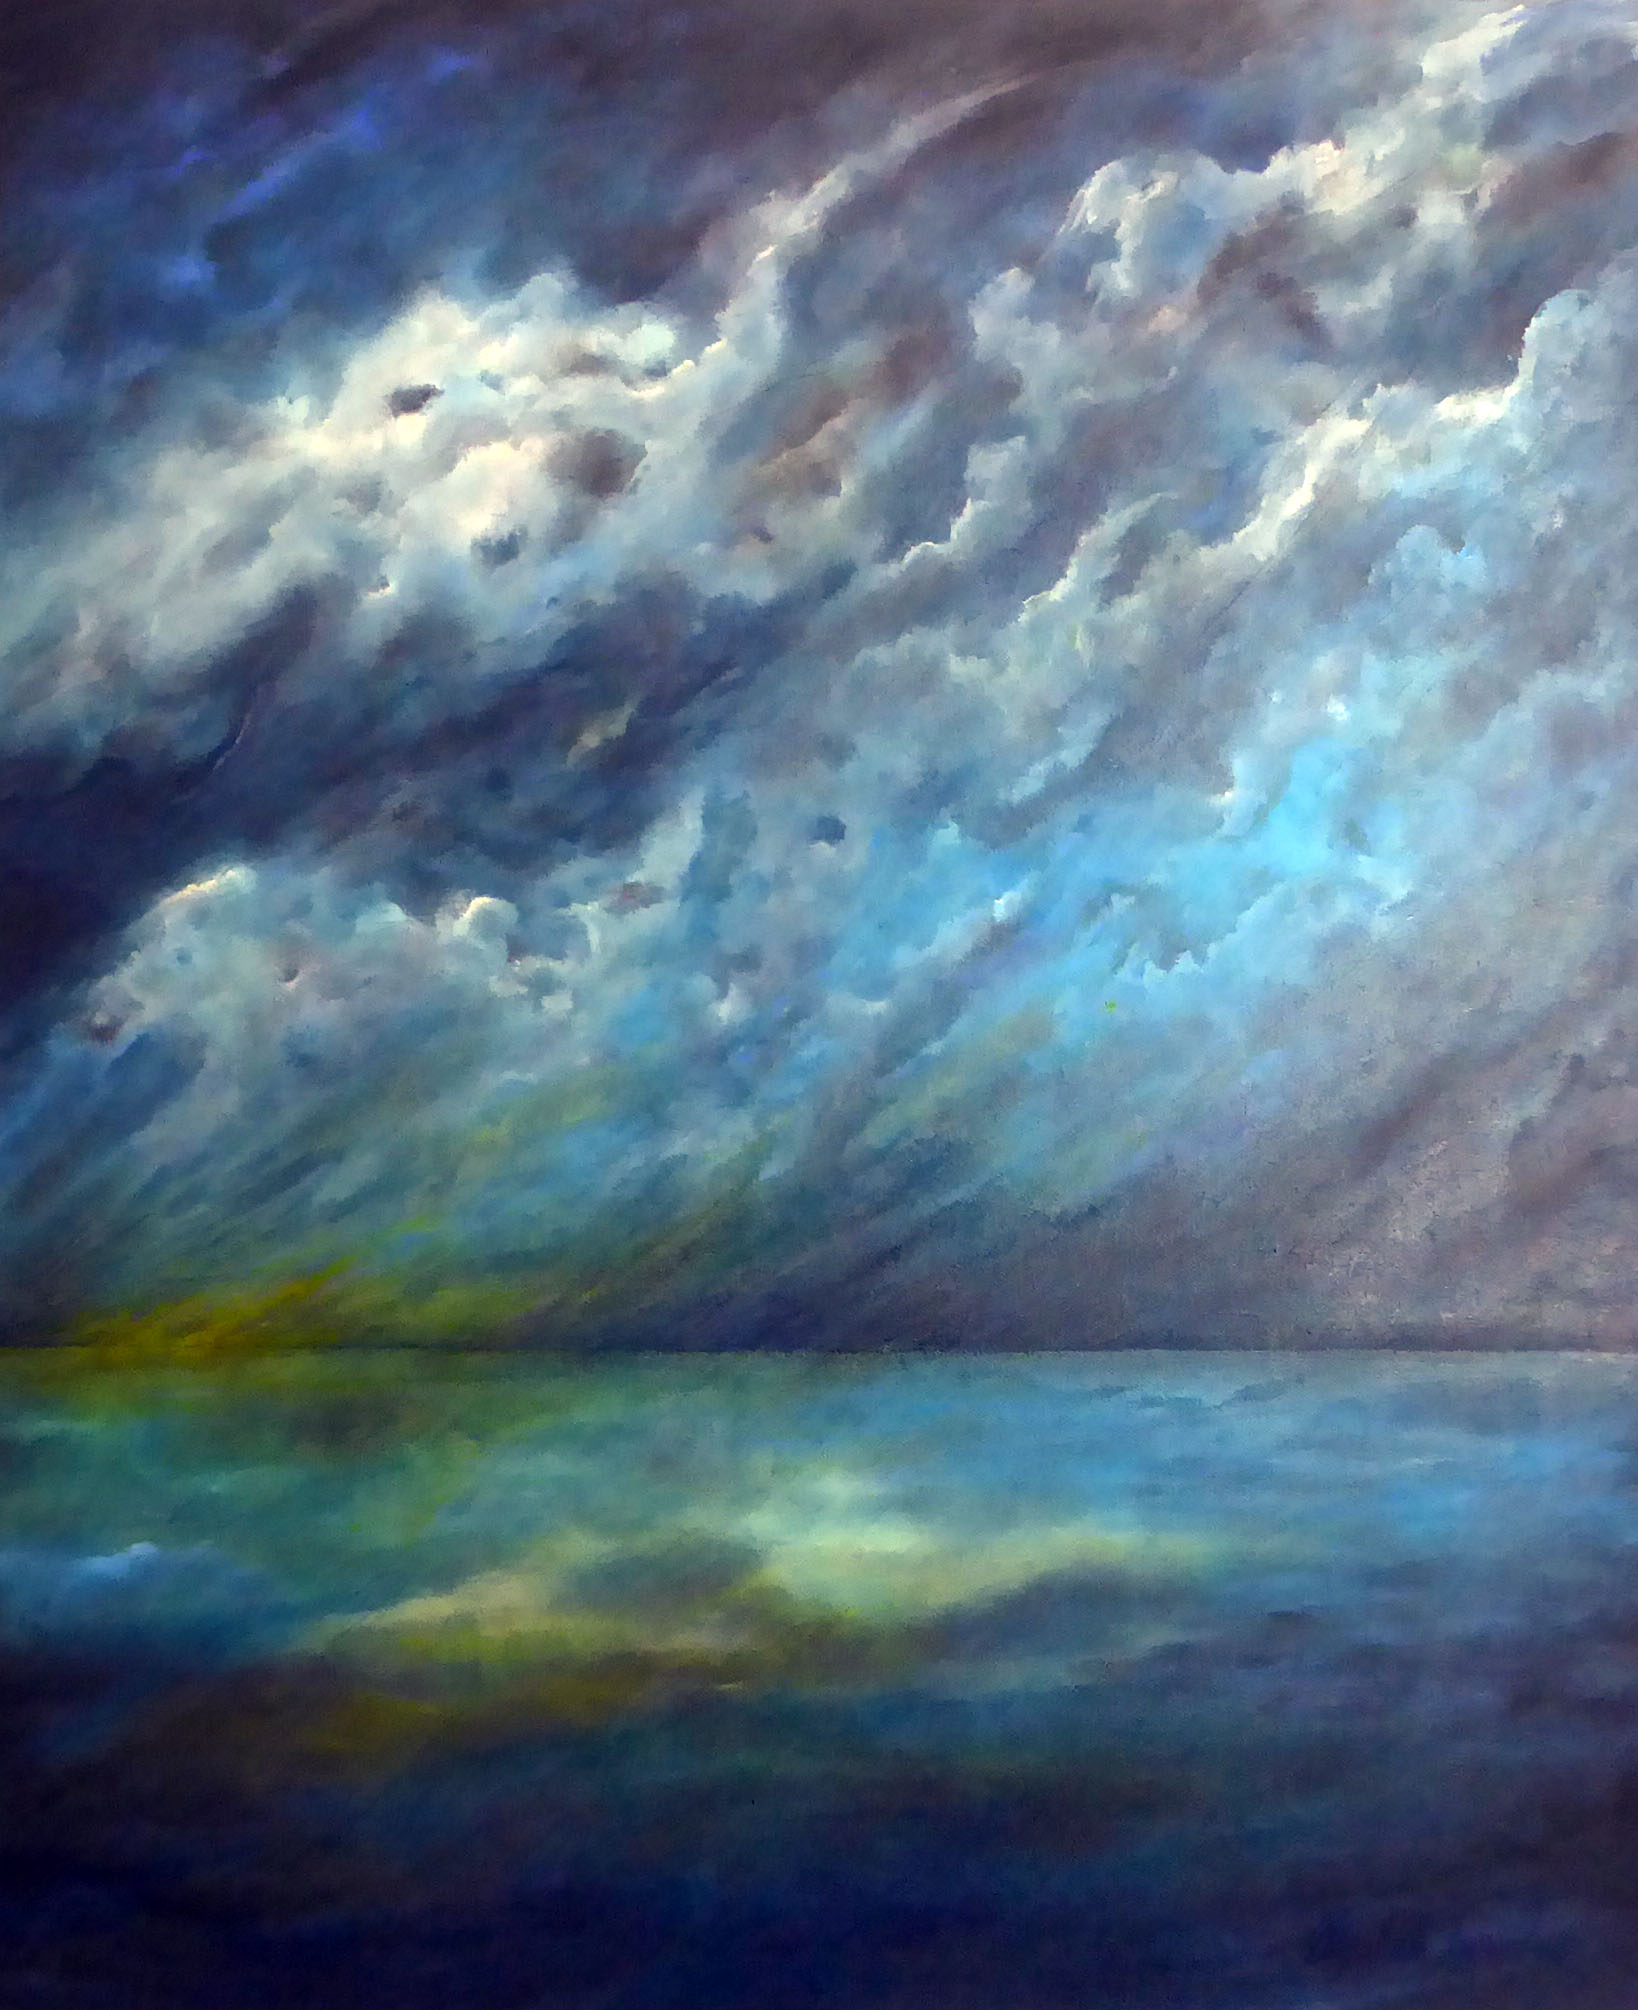 Into the Stormy Night 76cm x 91.5cm